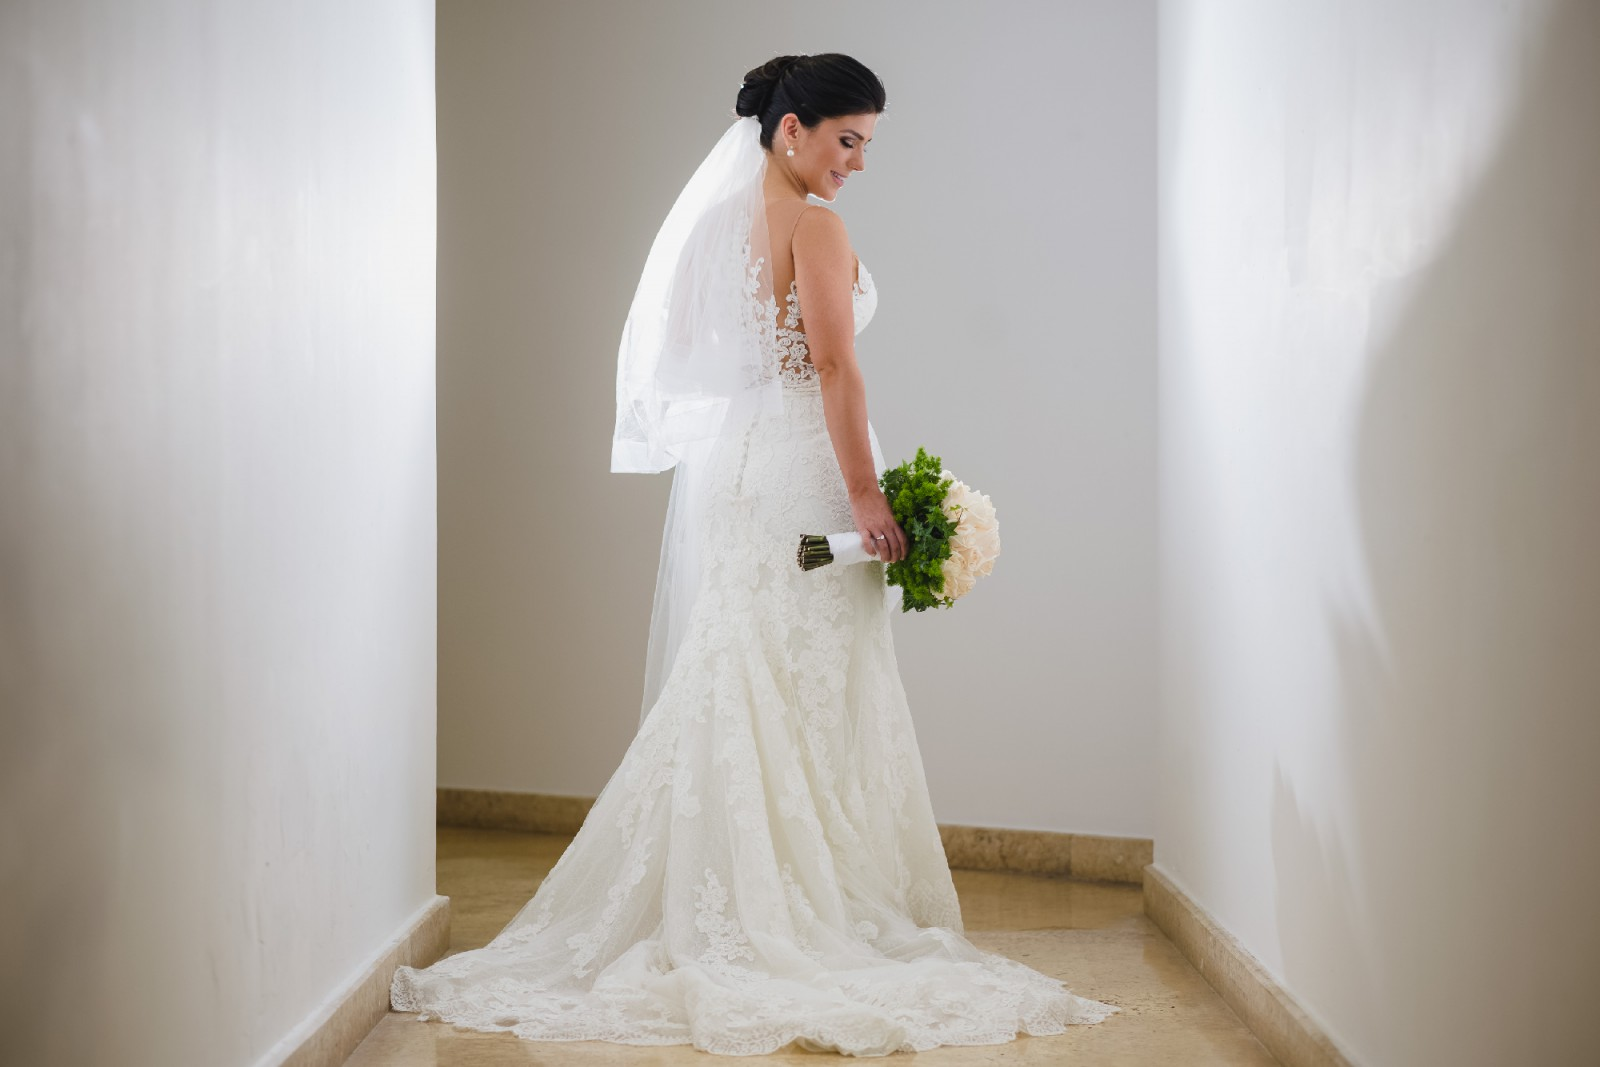 Pronovias Vicenta Second Hand Wedding Dress On Sale: Pronovias Placia Second Hand Wedding Dress On Sale 84% Off